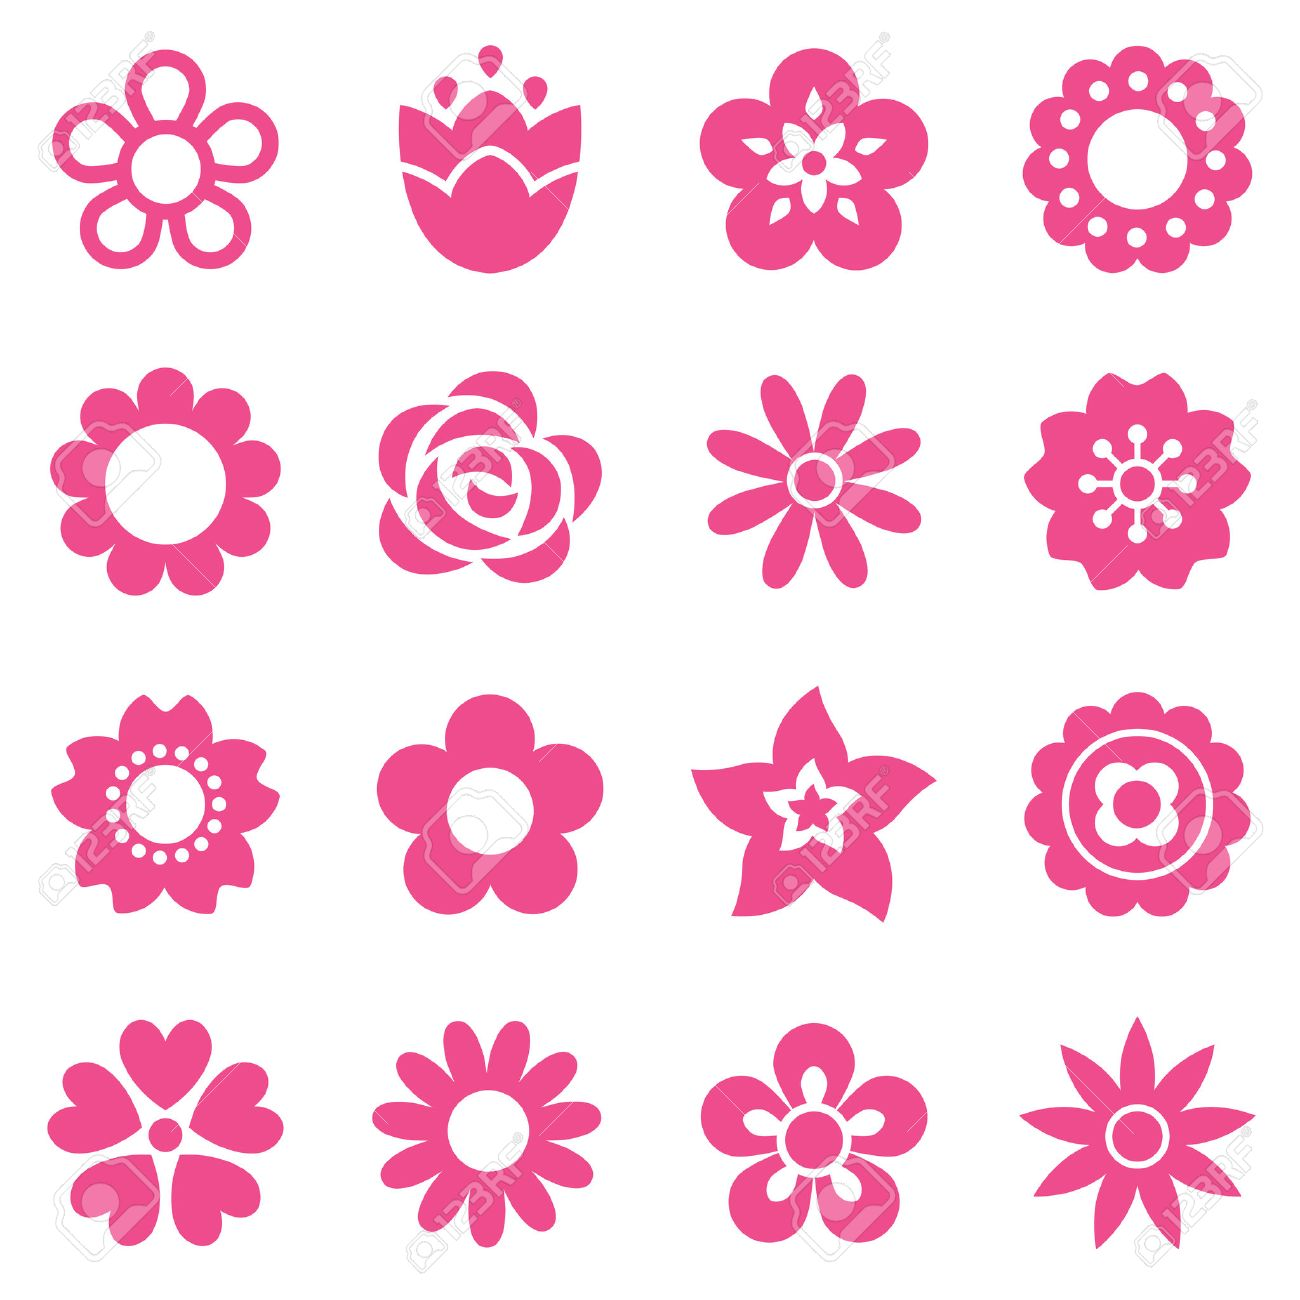 Set Of Flat Flower Icons In Silhouette Isolated On White Simple